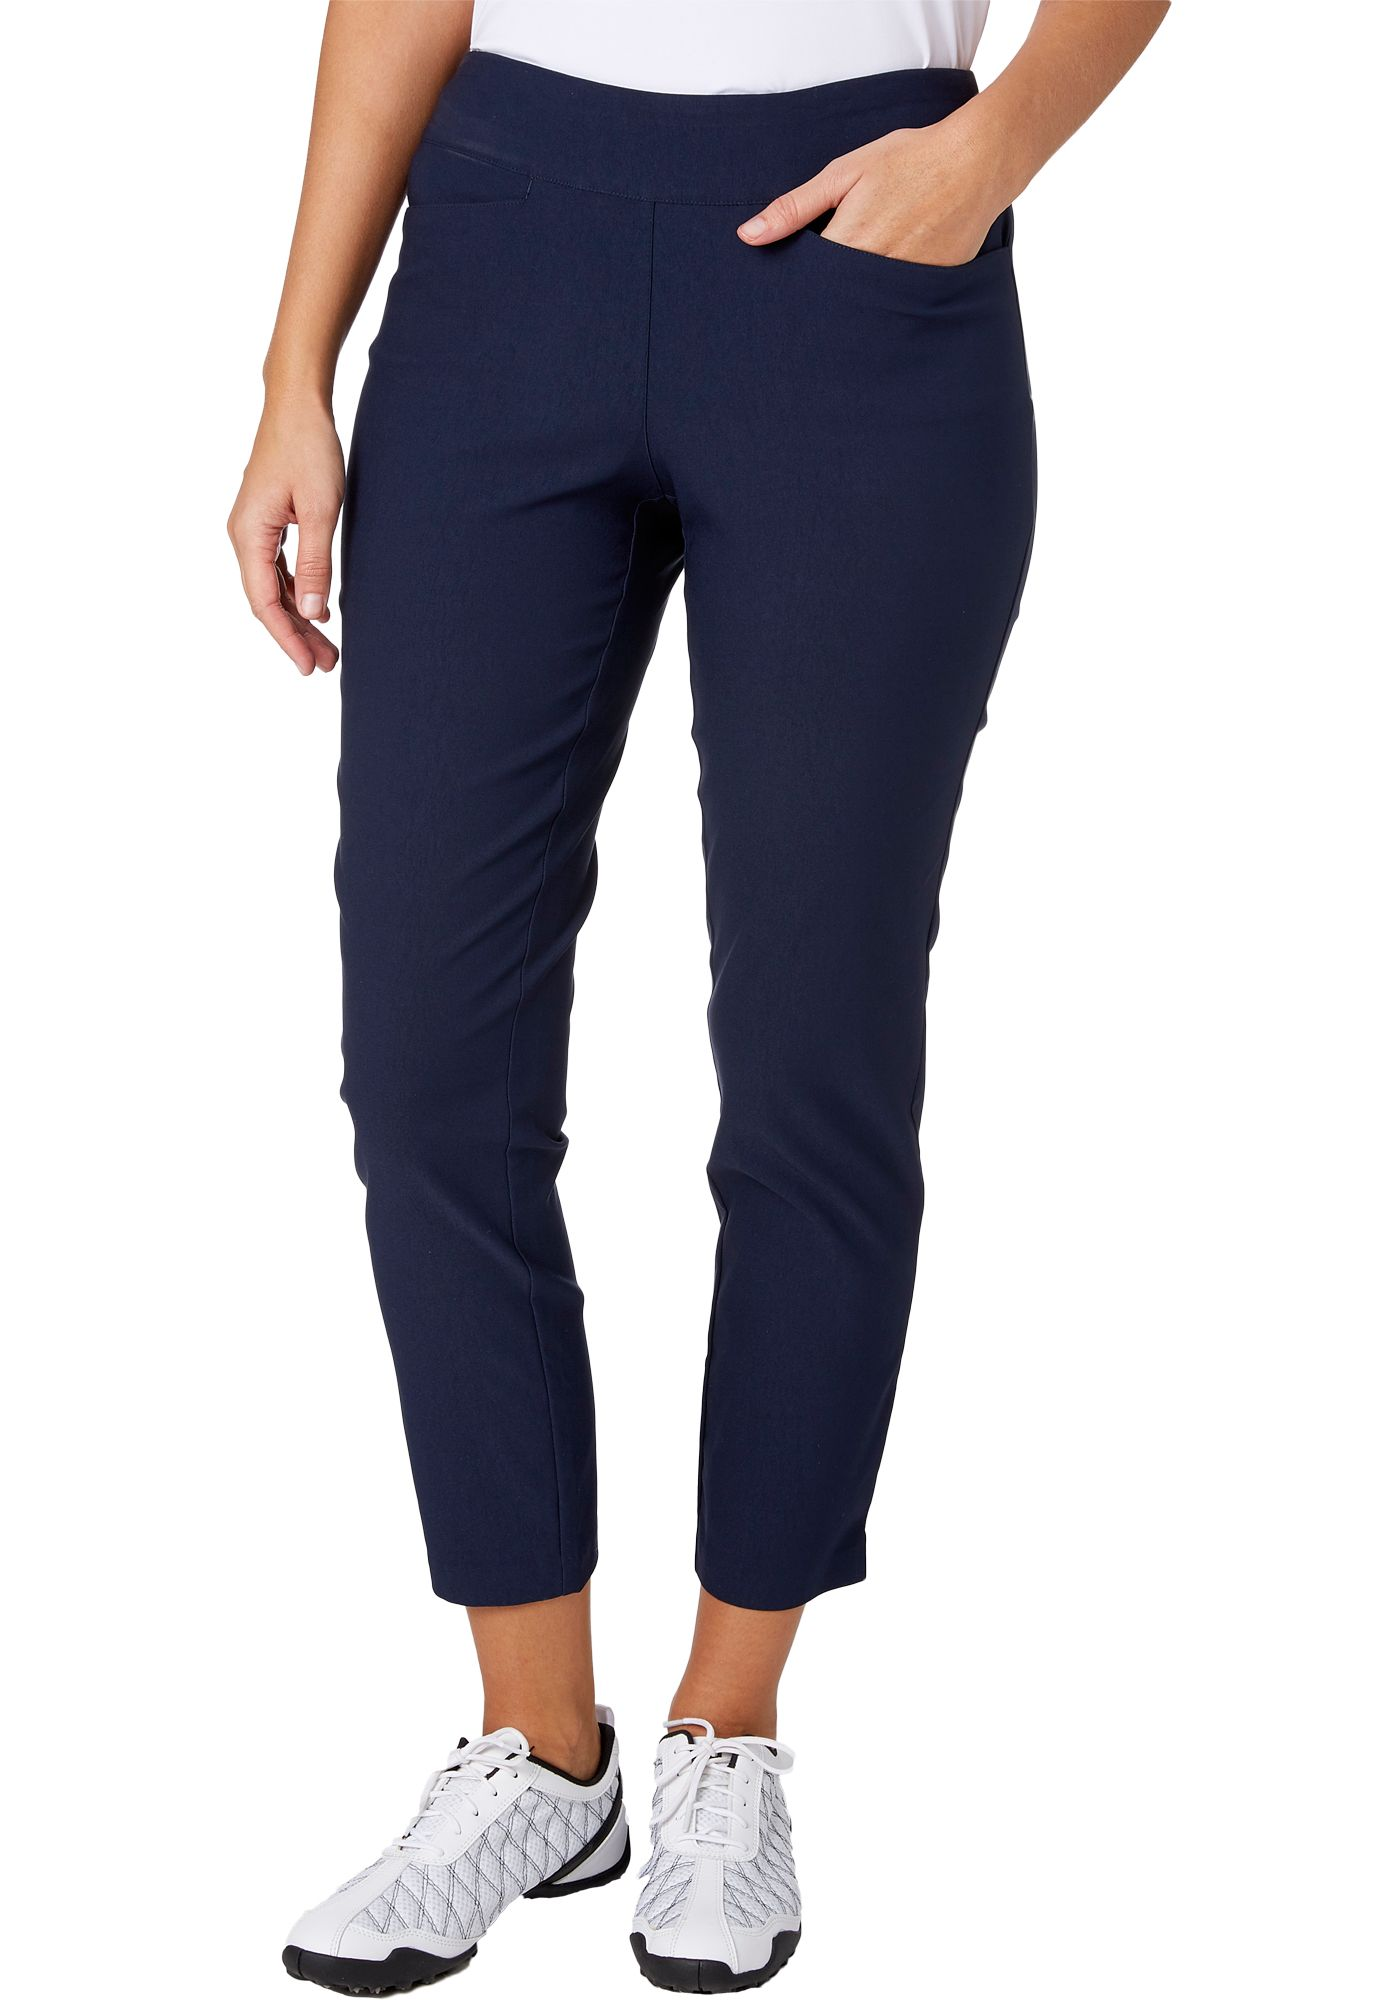 Lady Hagen Women's Easy Shaper Pull On Golf Ankle Pants